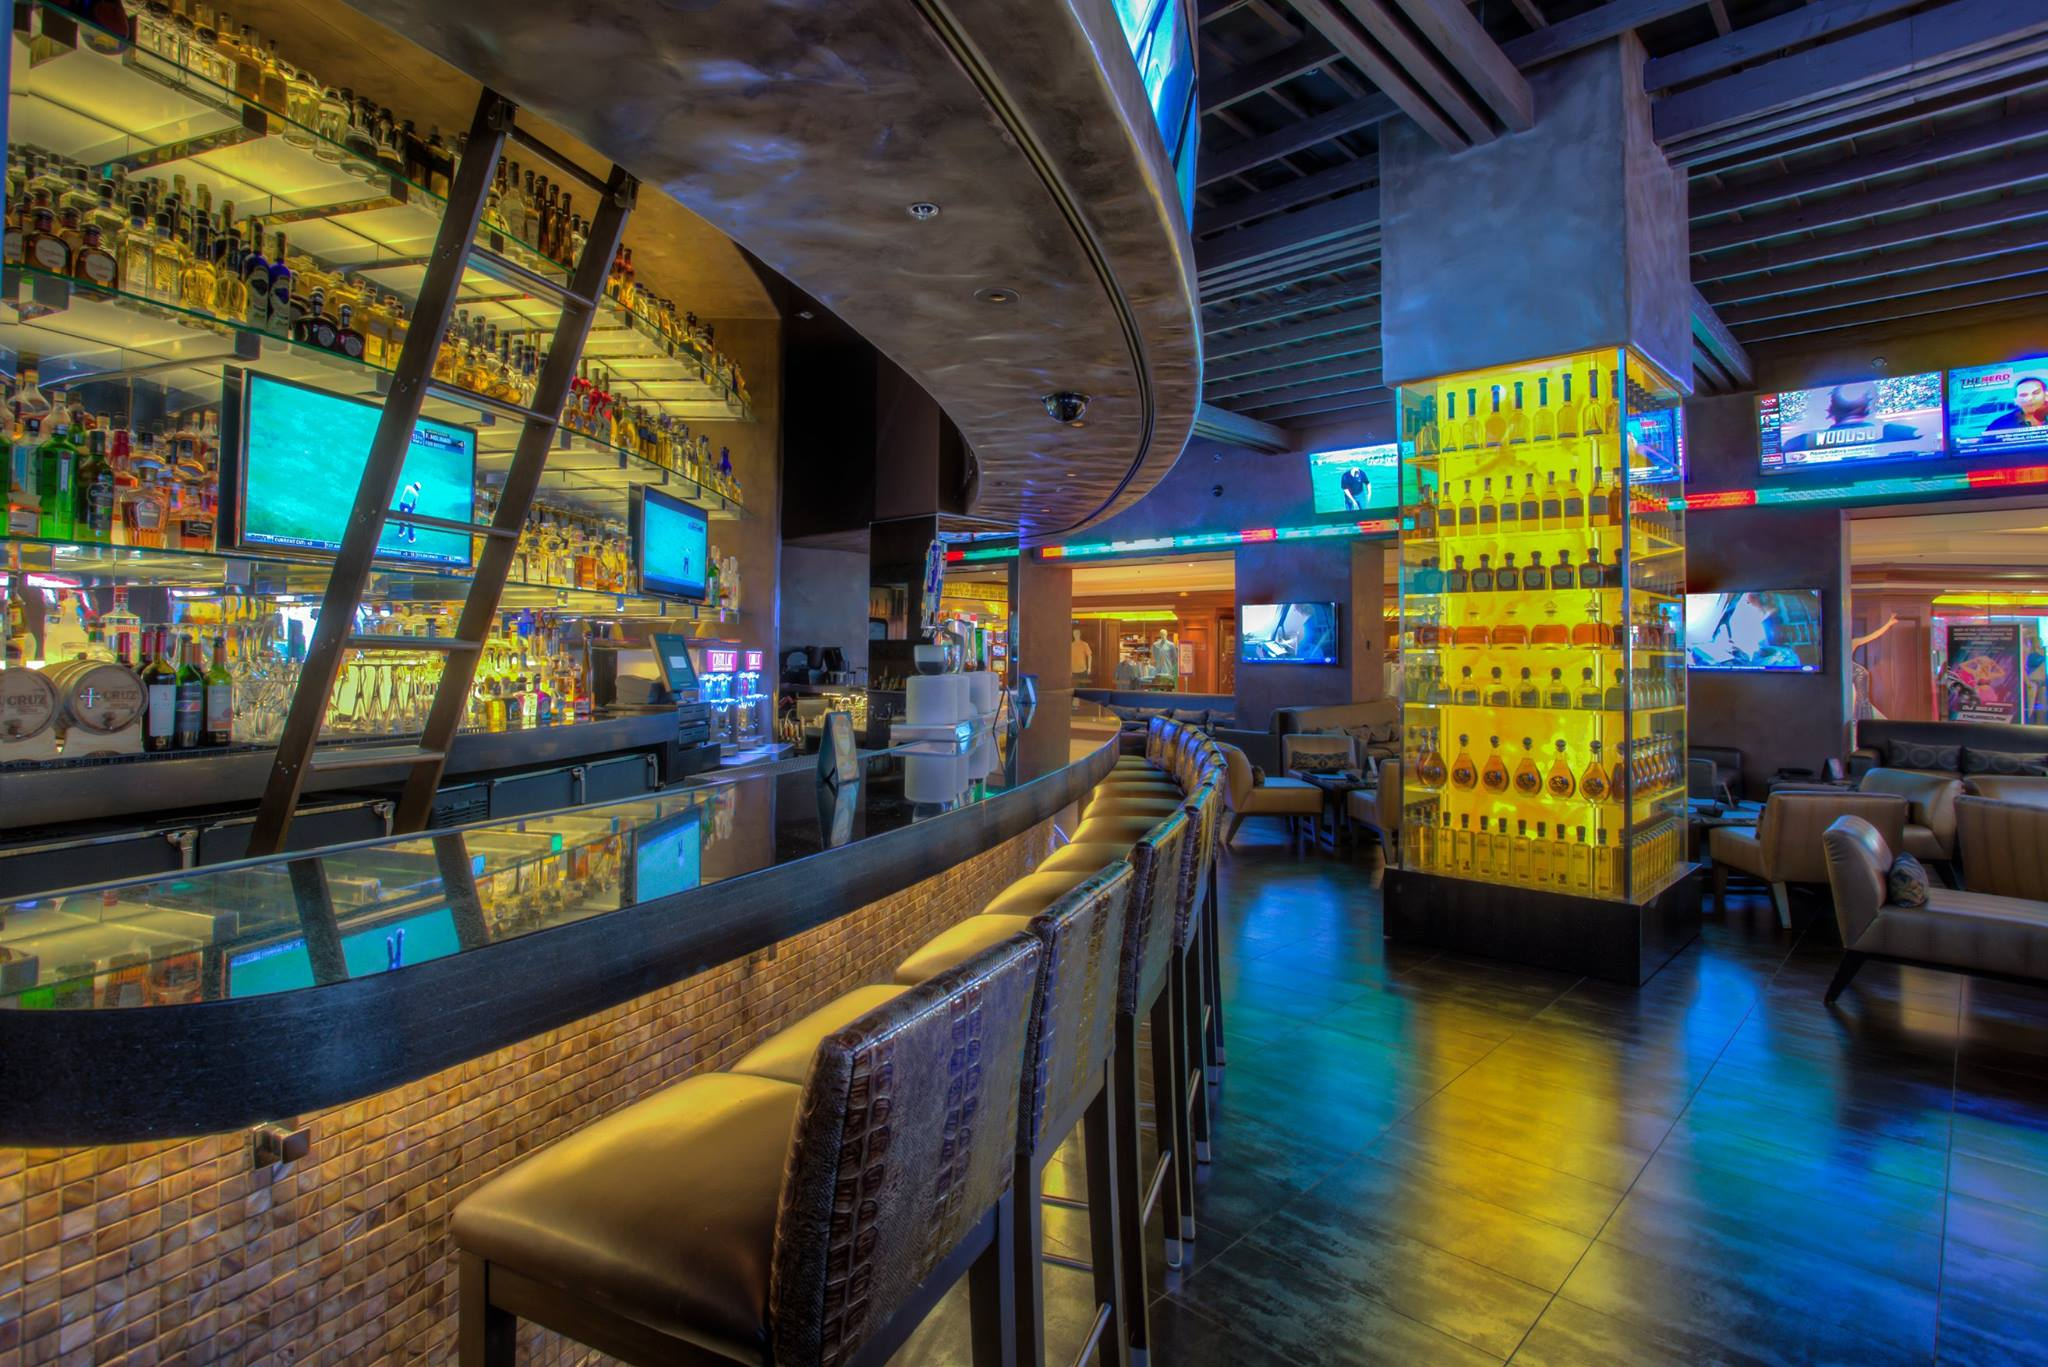 Cadillac Mexican Kitchen & Tequila Bar inside Golden Nugget Las Vegas